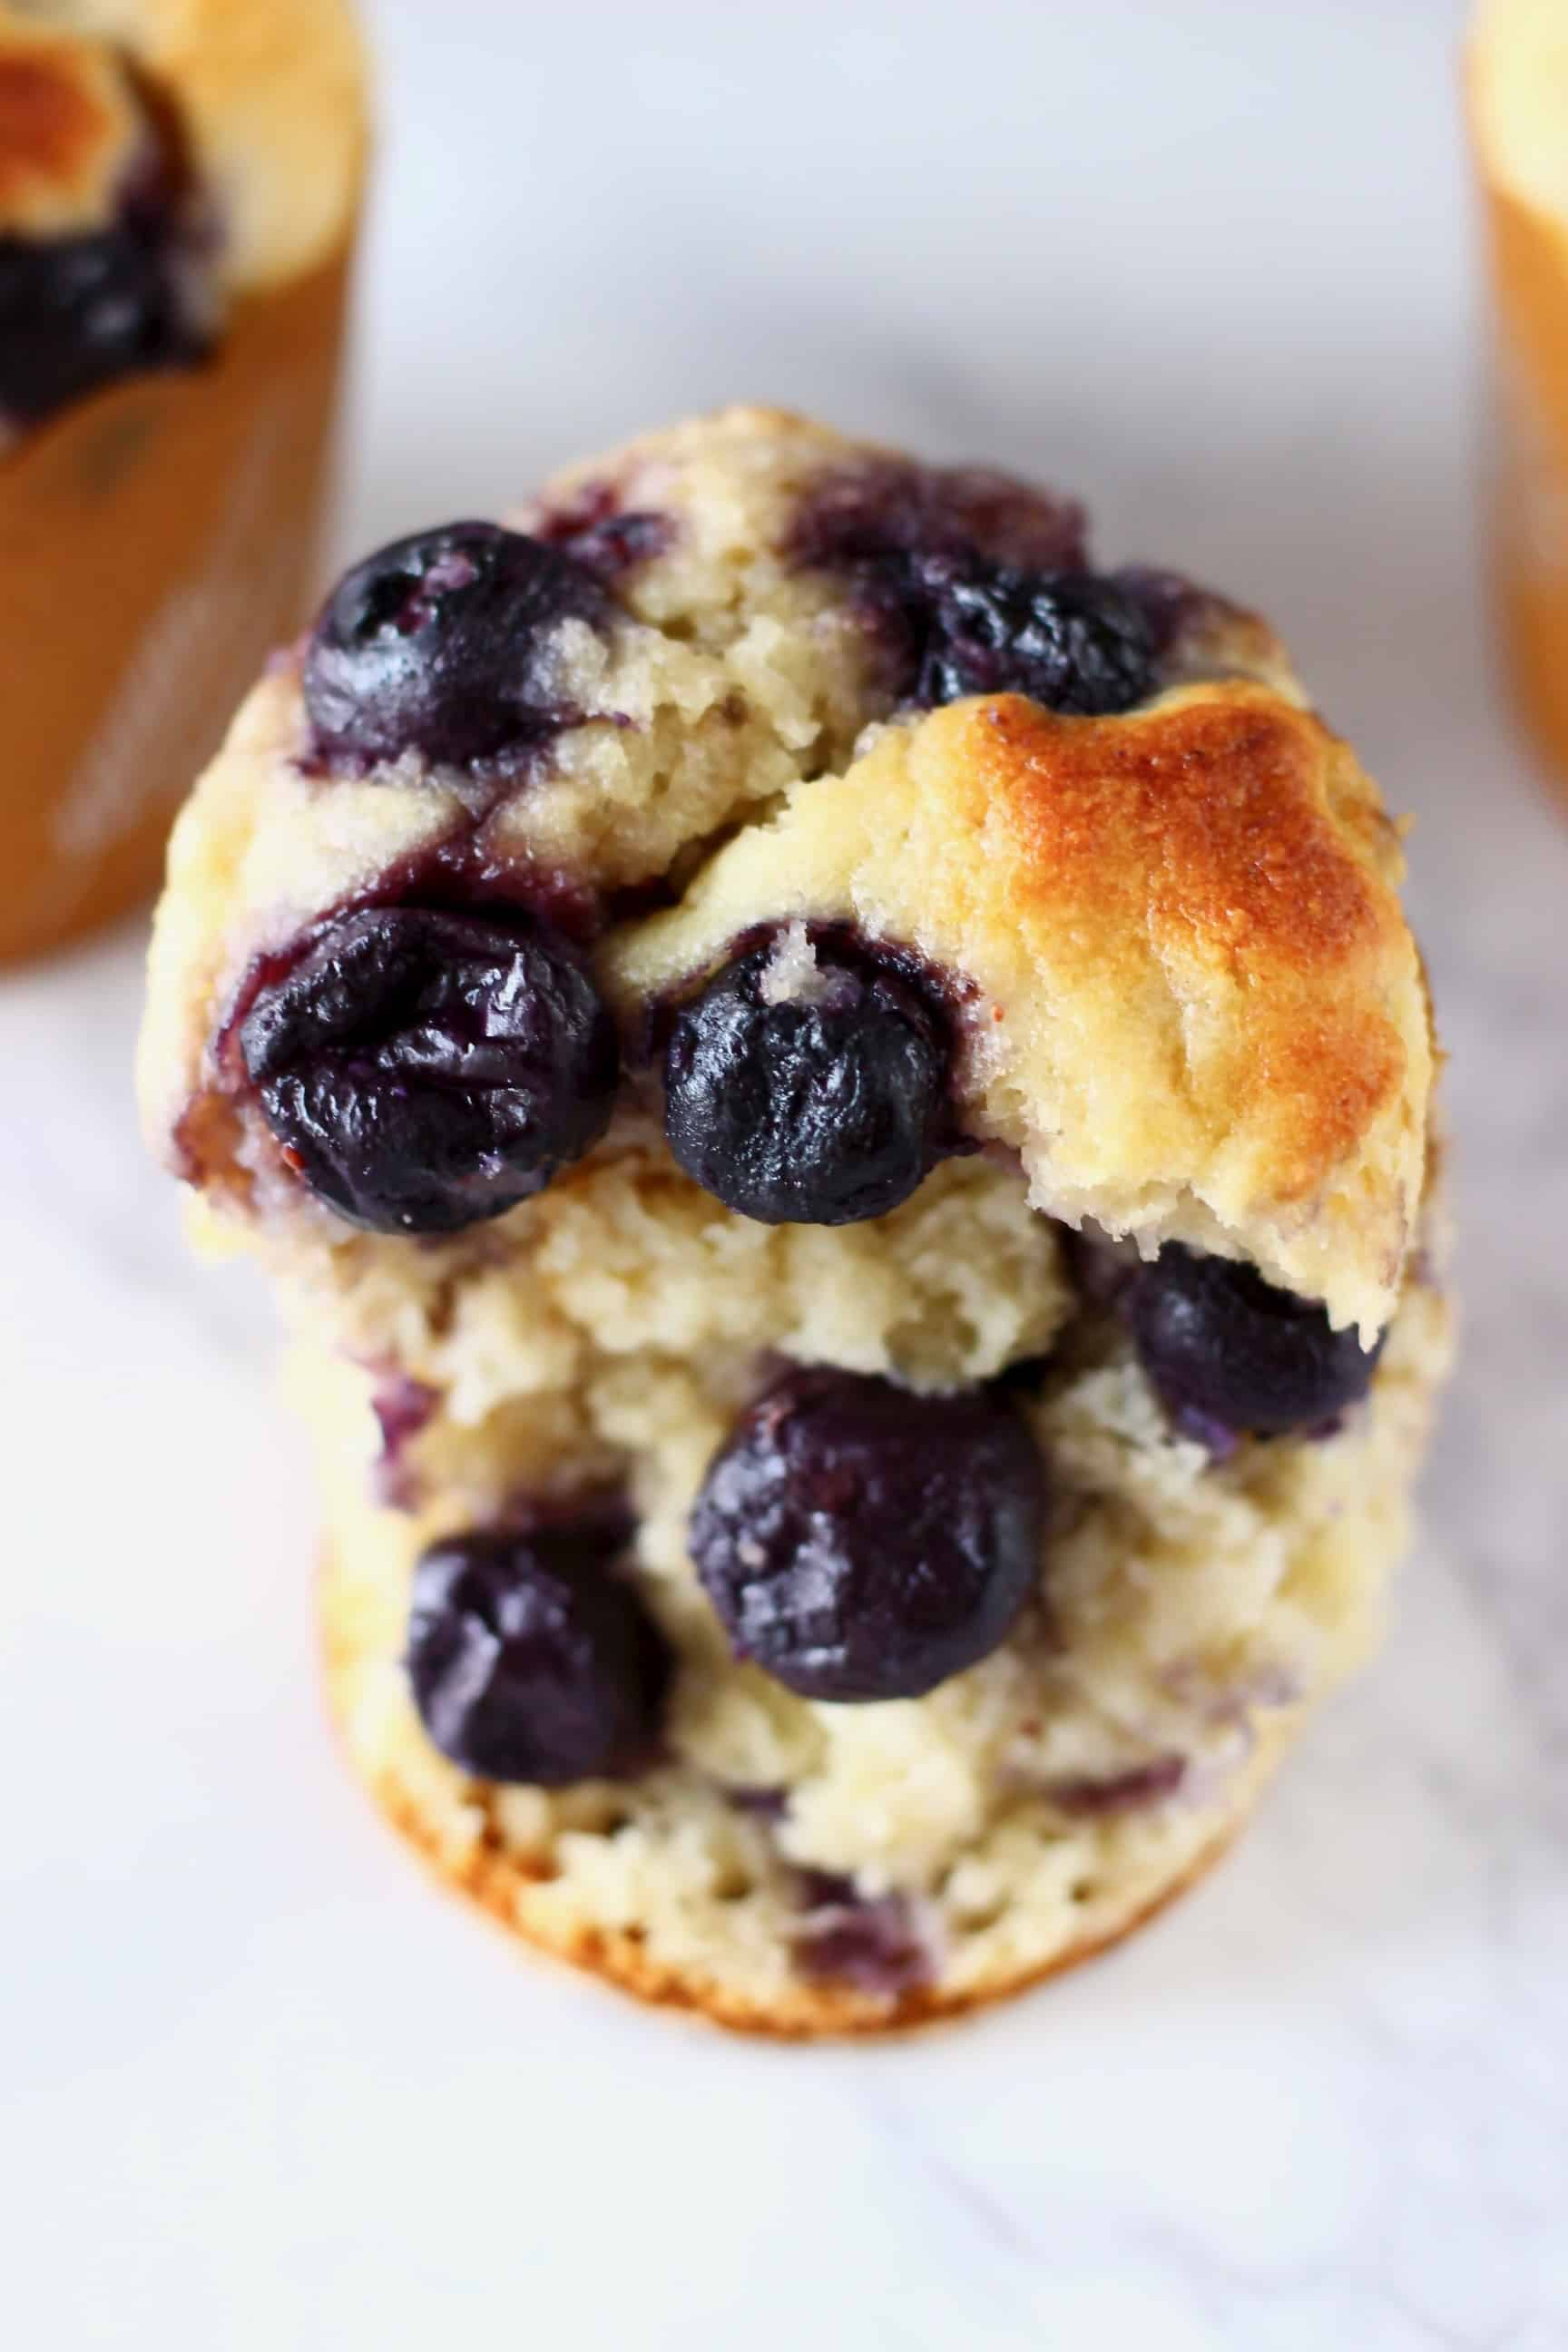 Half a gluten-free vegan blueberry banana muffin with two more muffins in the background